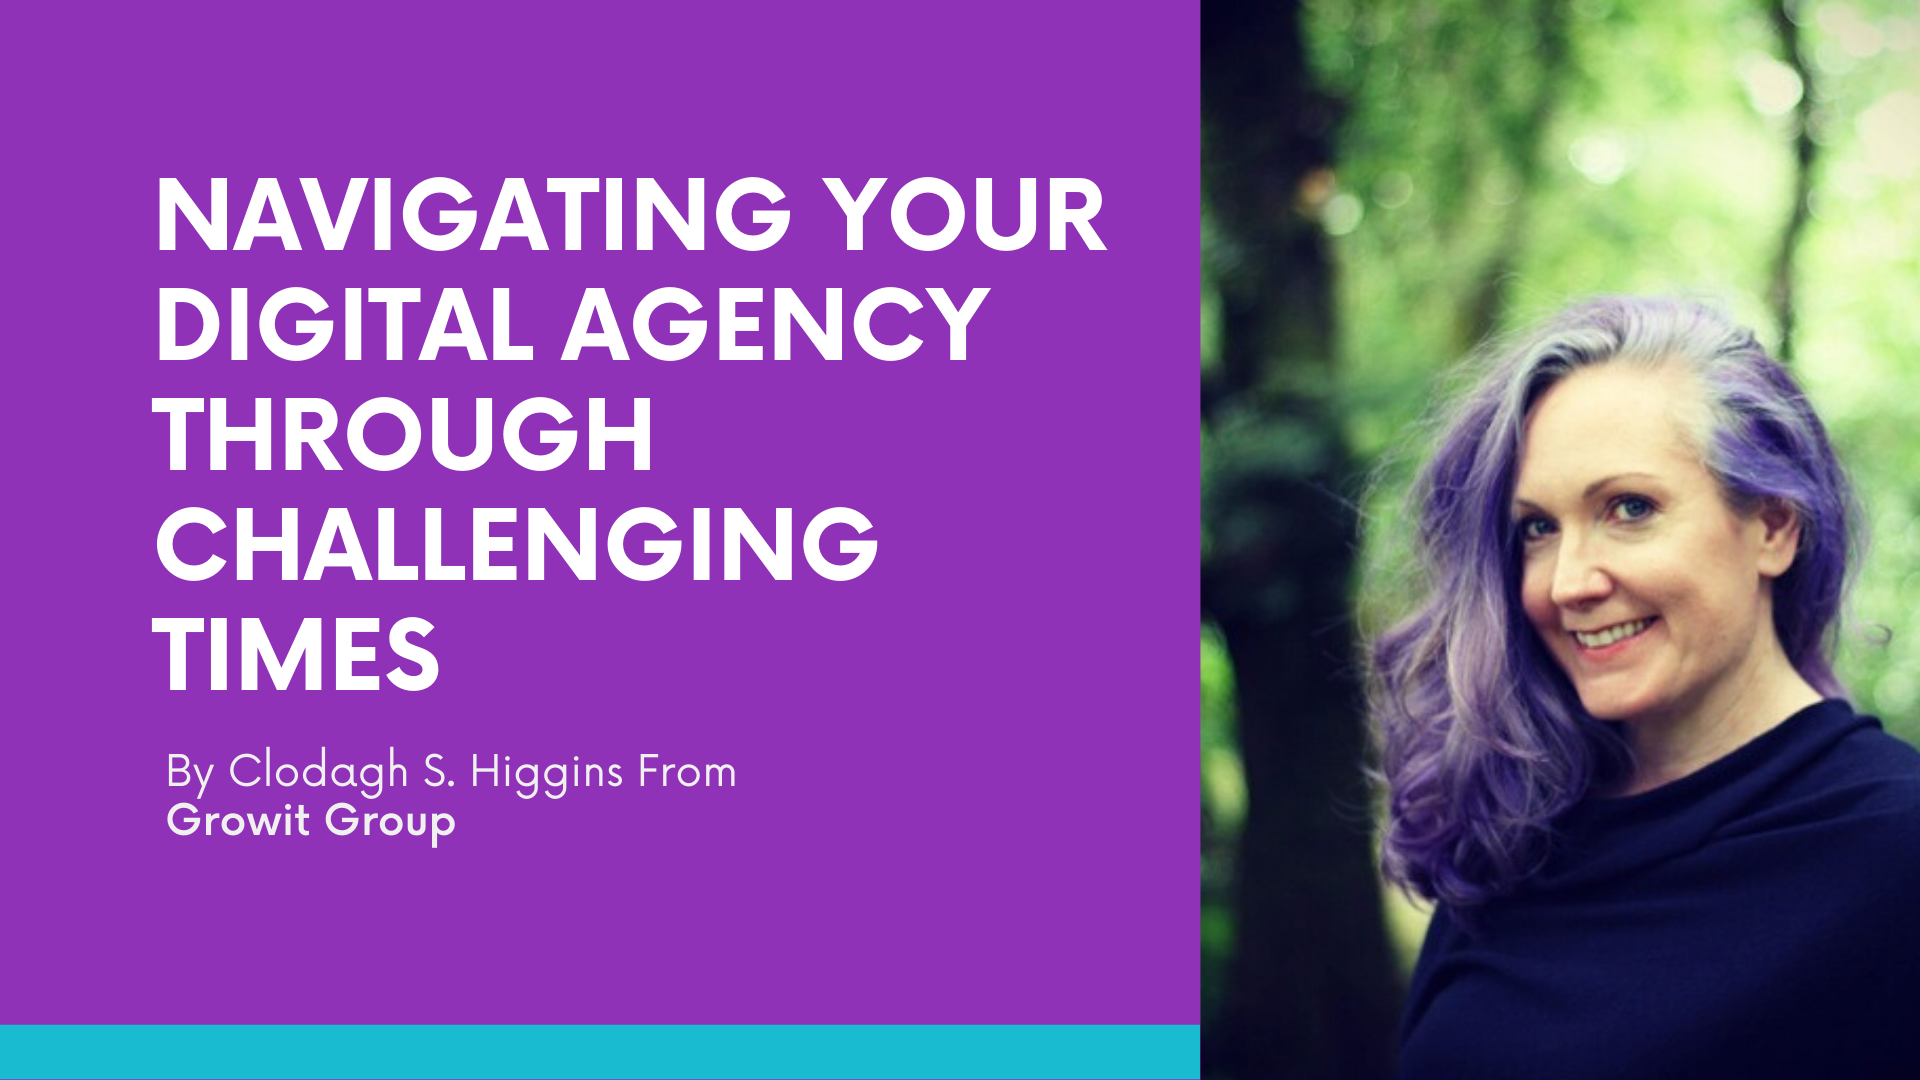 [Final] How to Navigate your Digital Agency through Challenging Times